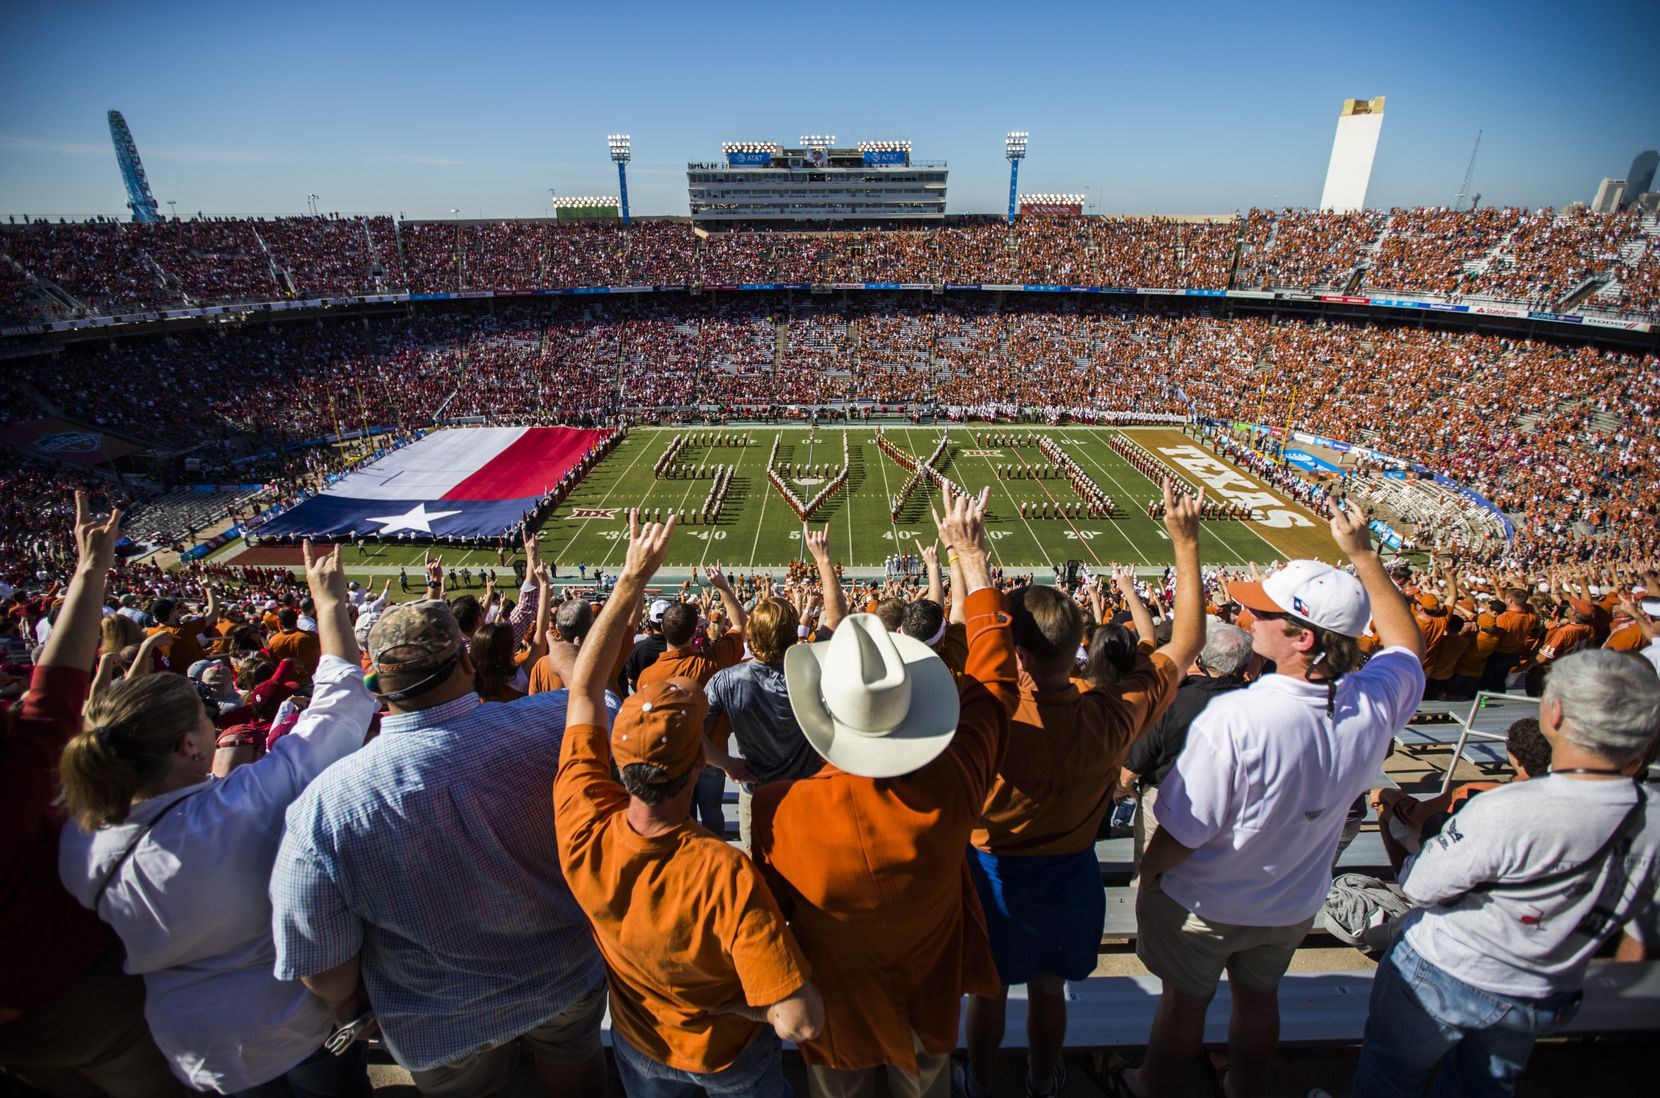 Texas Longhorns fans hookem as the Texas Longhorns band takes the field before the 2016 AT&T Red River Showdown between the Texas Longhorns and the Oklahoma Sooners at the Cotton Bowl in Fair Park.